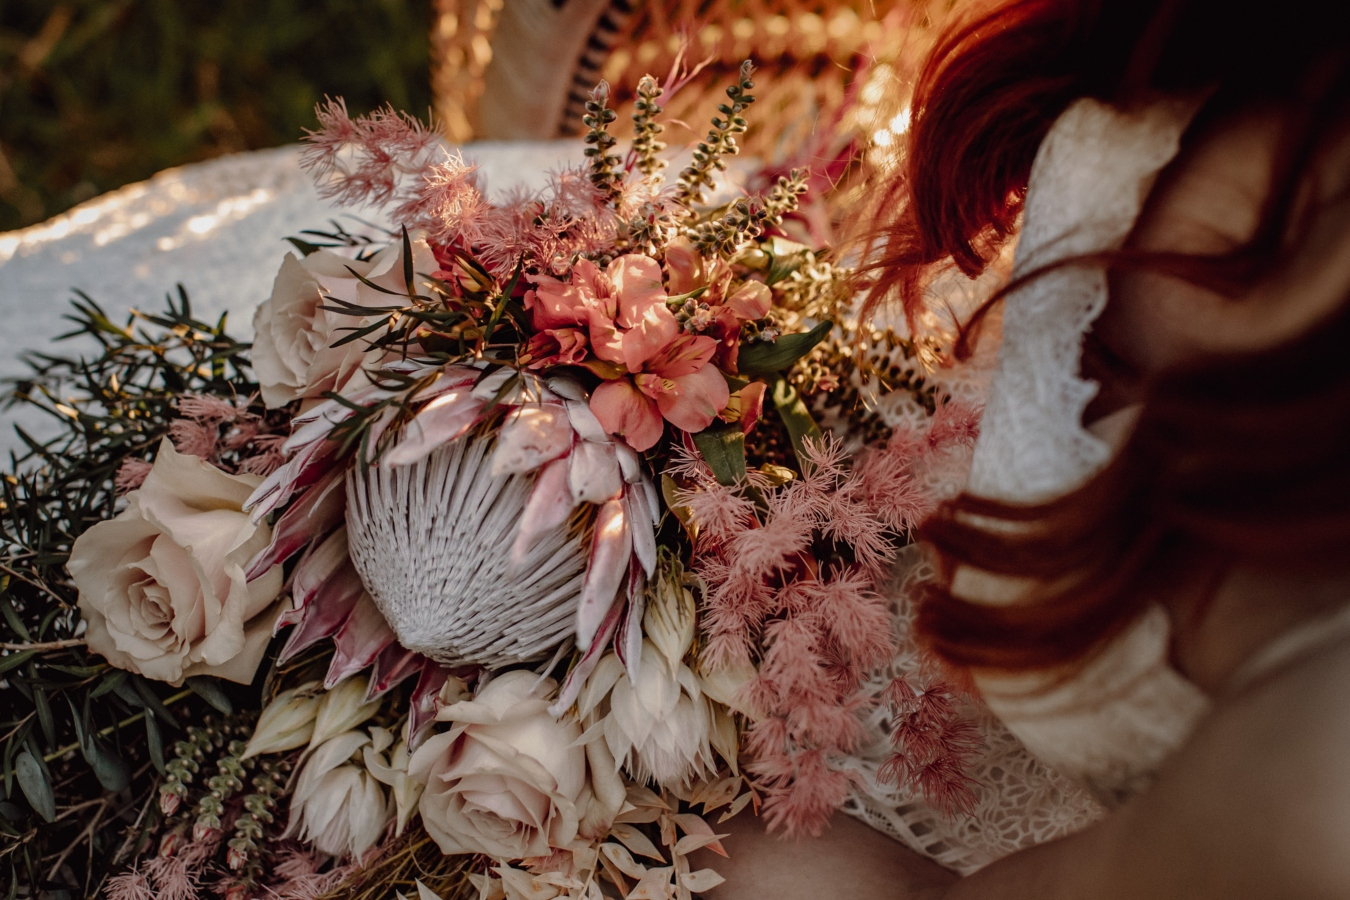 Close up of bouquet in bride's lap